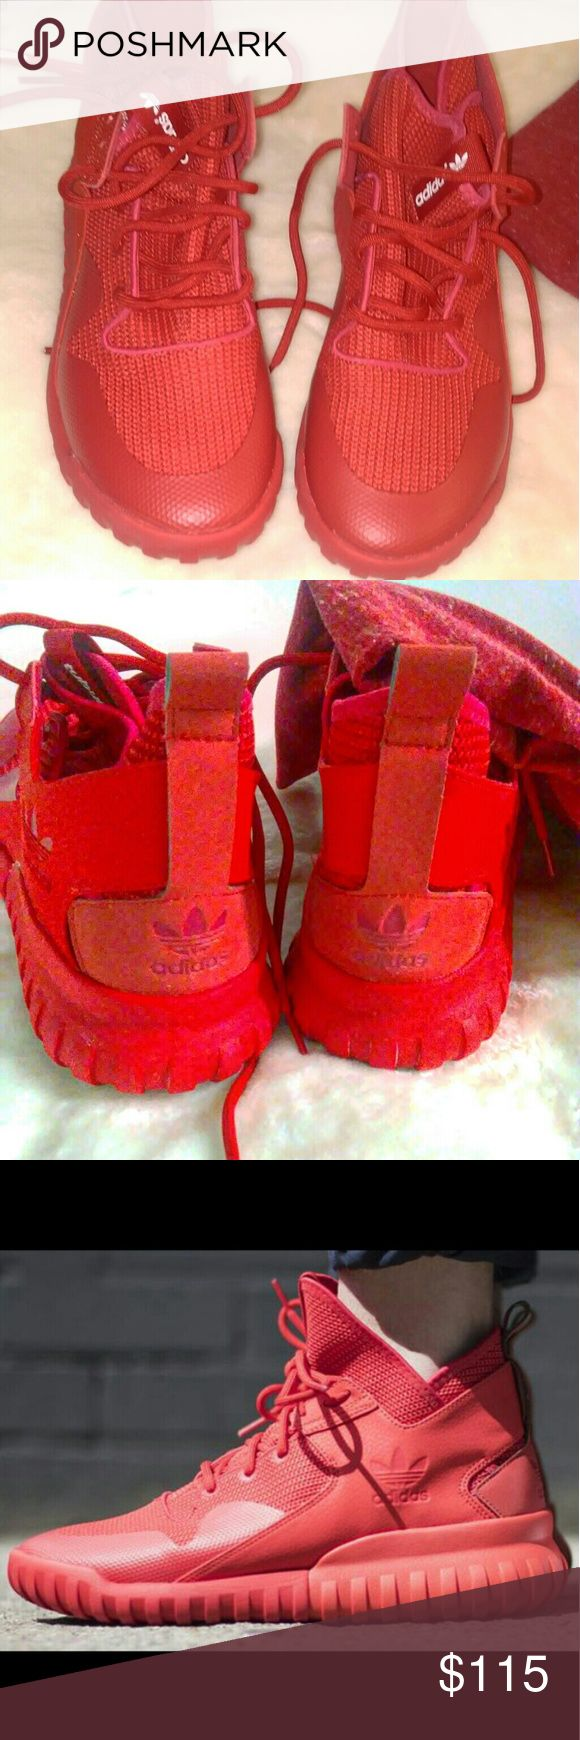 Adidas Tubular X Red October NWOT Nice Hi top red shoe.   Brand new without Box New Never been worn 100% Authentic adidas Shoes Sneakers